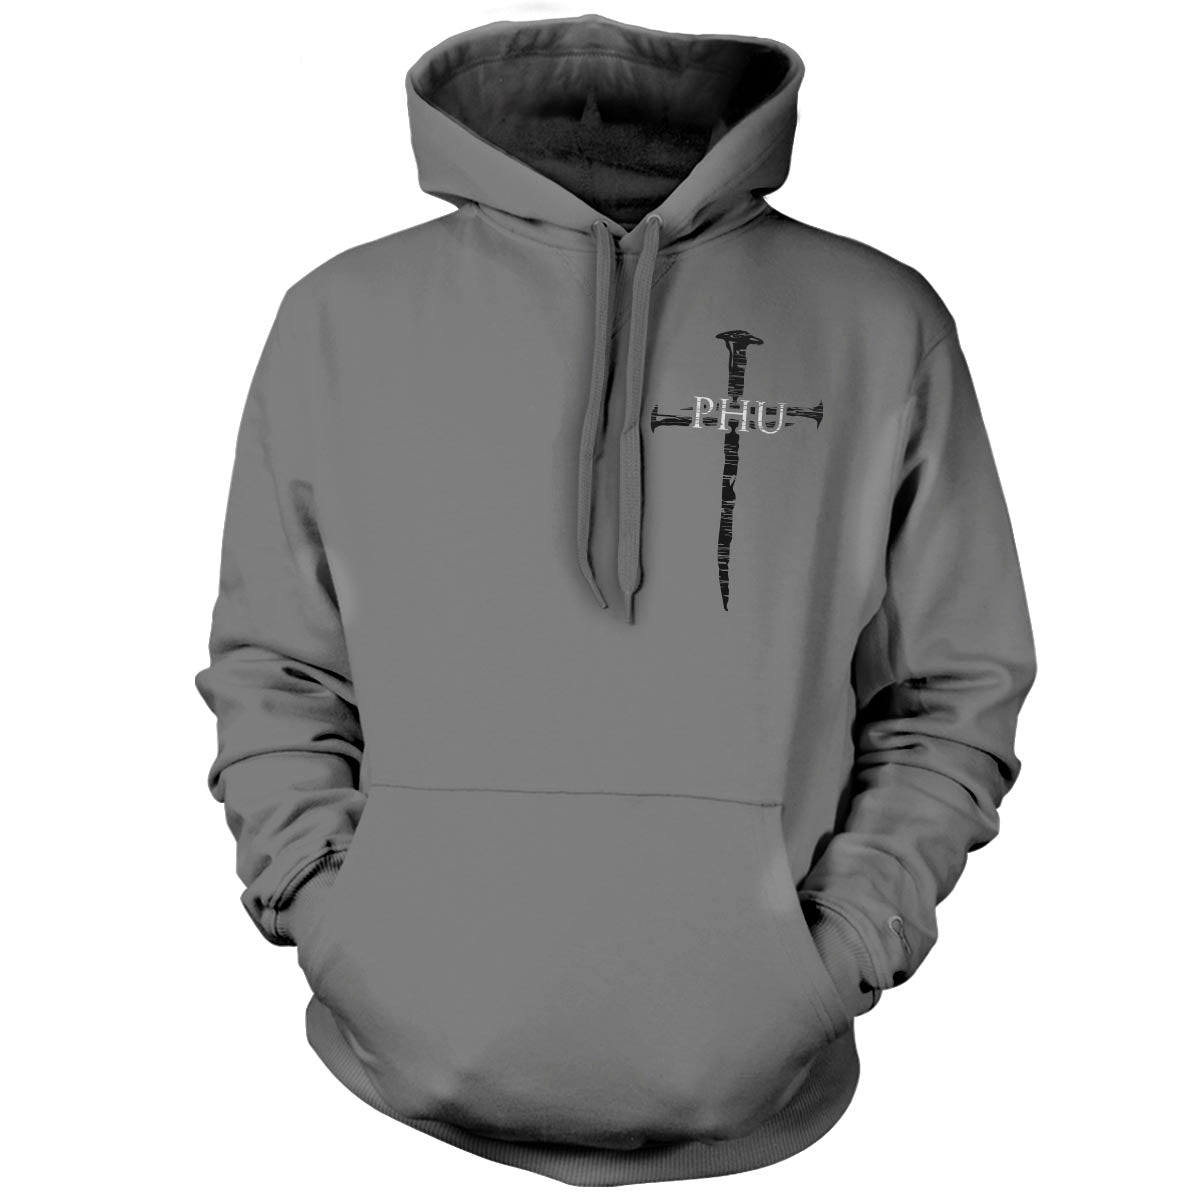 John 3:16 - Hoodie -  - T-Shirts - Pipe Hitters Union